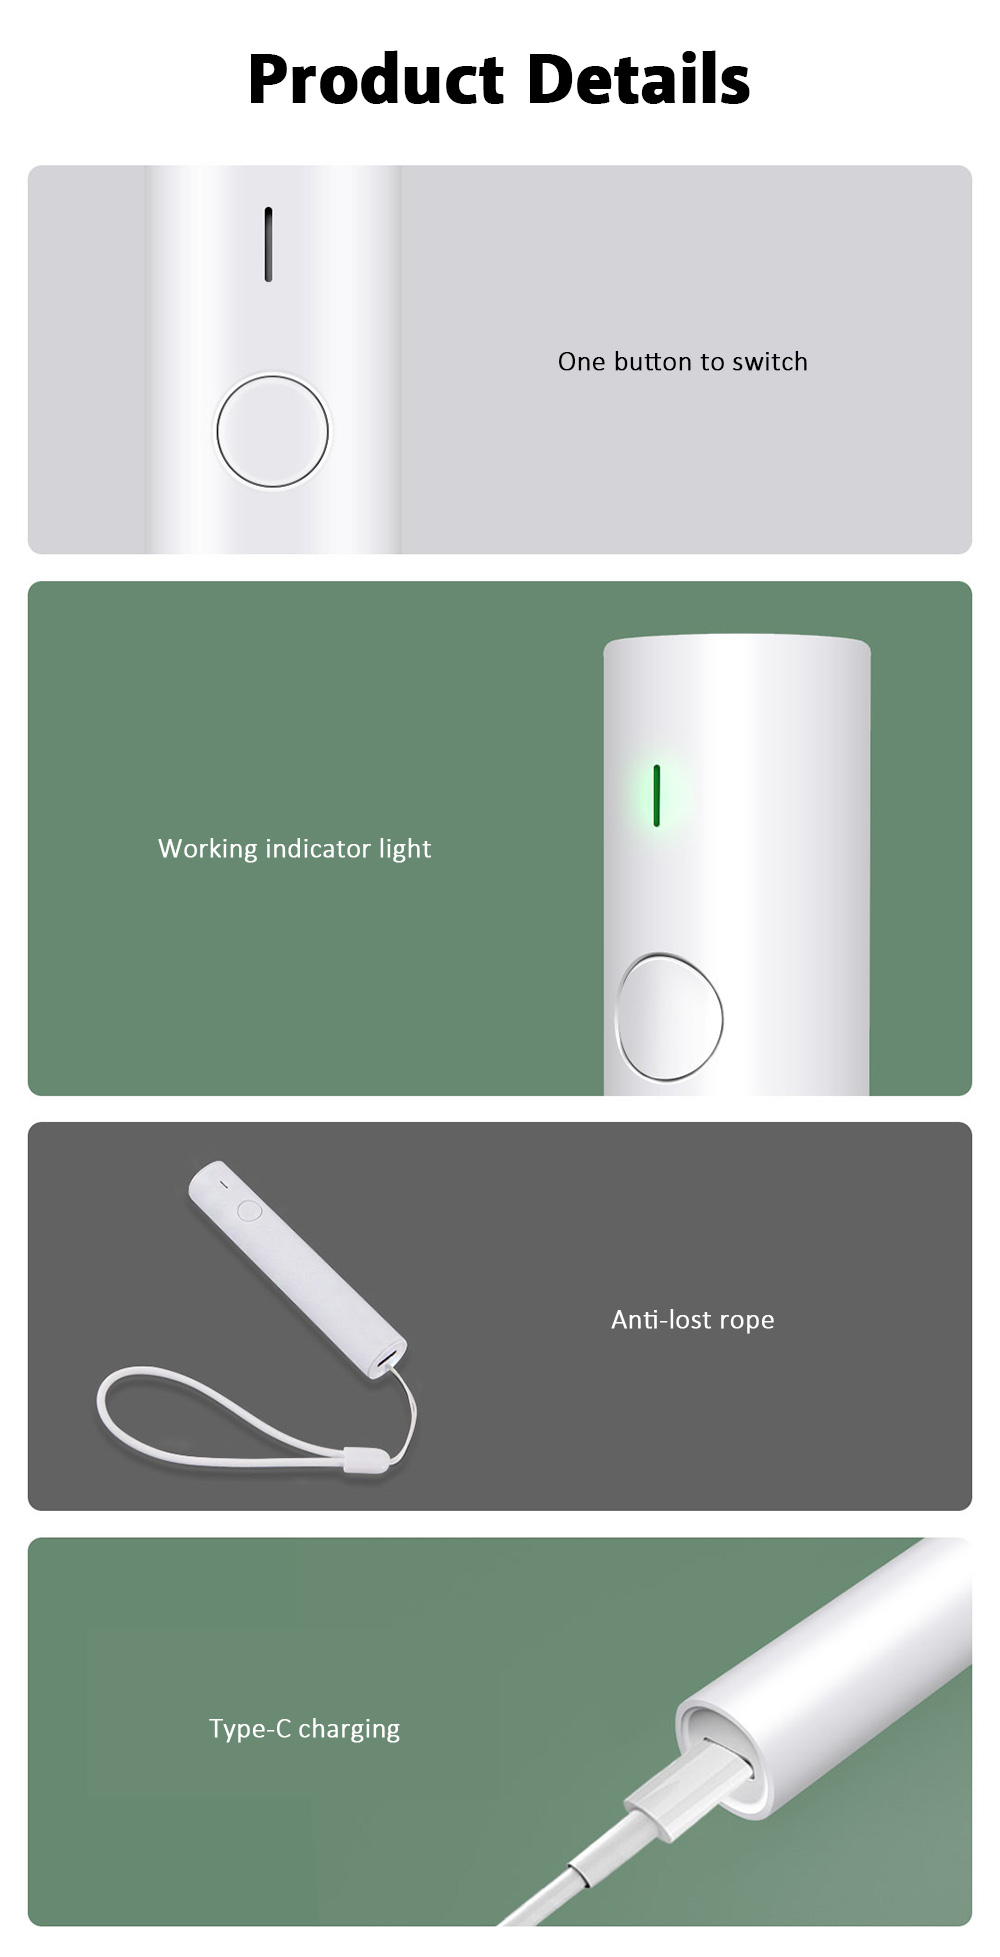 Small and Portable Infrared Pulse Antipruritic Stick Precise Temperature Control 200mAh Battery from Xiaomi Youpin